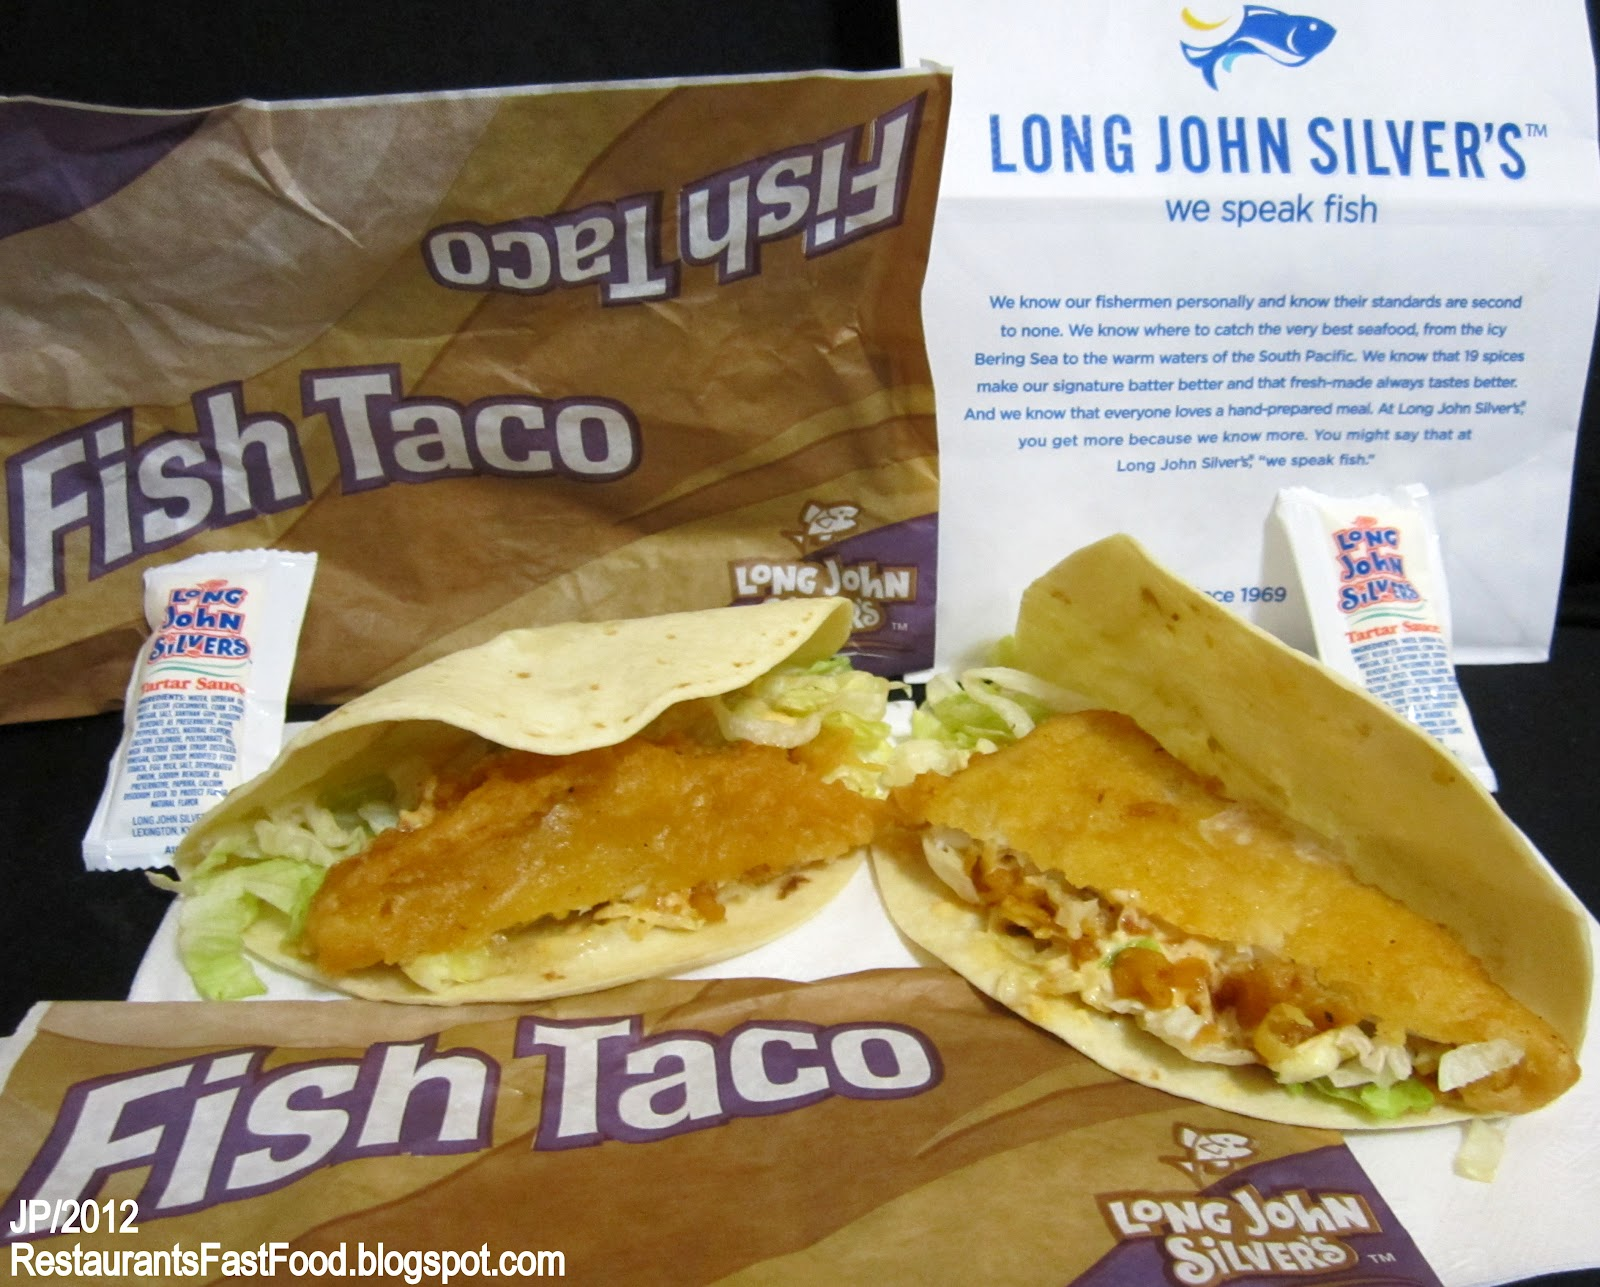 Restaurant fast food menu mcdonald 39 s dq bk hamburger pizza for Long john silvers fish